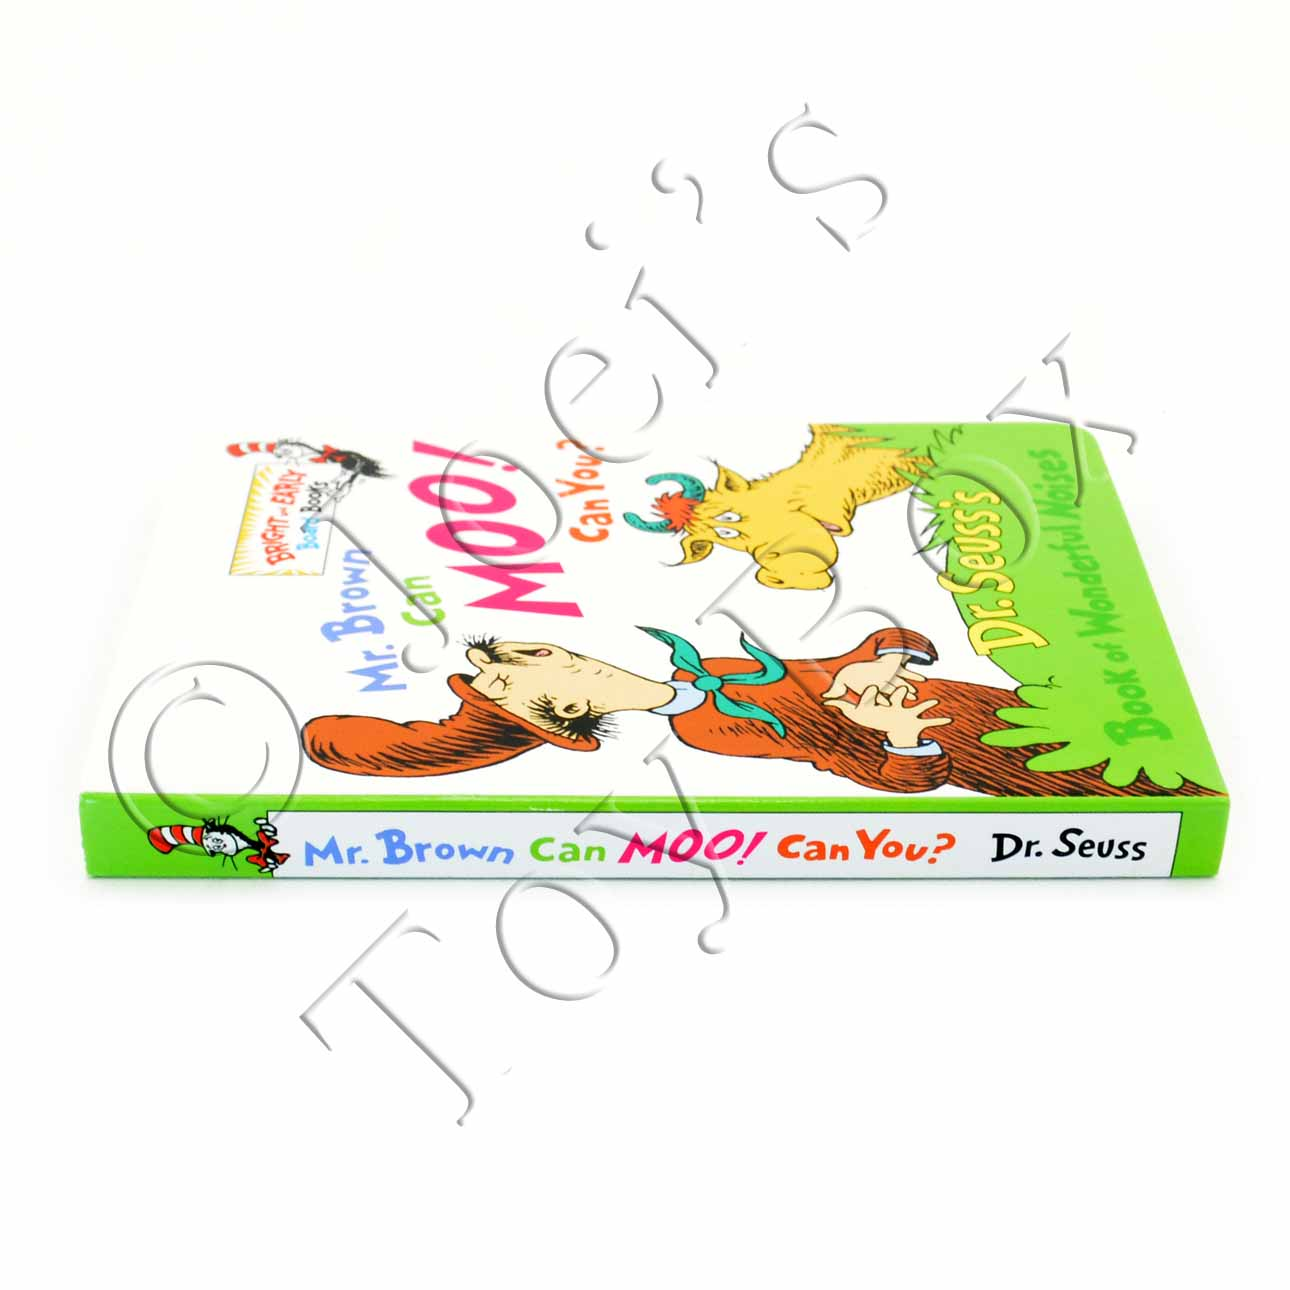 Mr Brown Can Moo Can You By Dr Seuss Board Book Joei